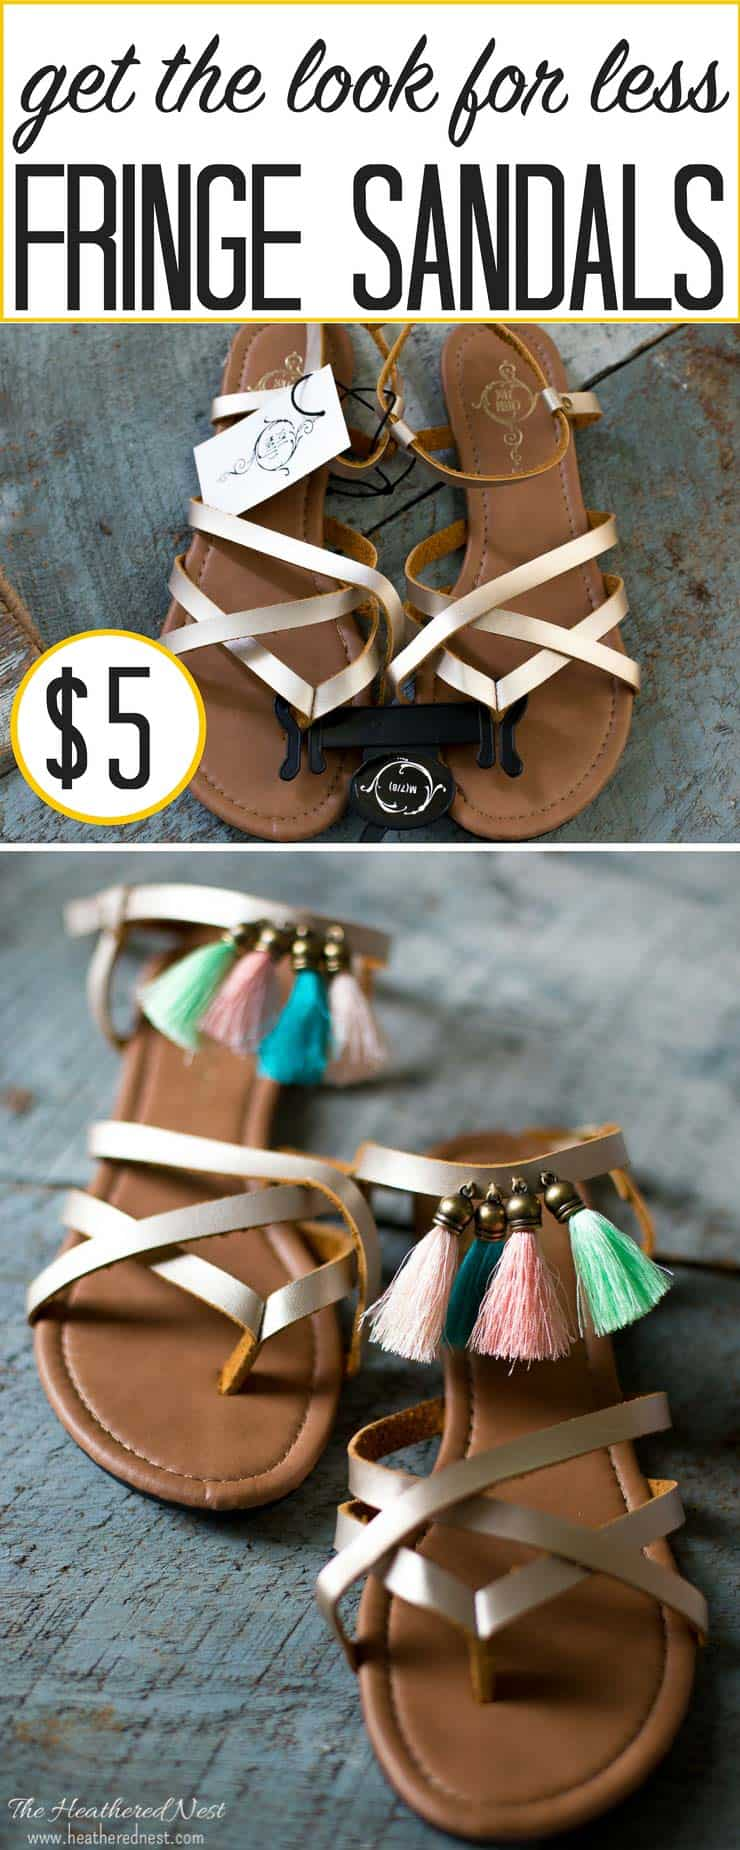 An easy way to make some $5 sandals special! Add some fringe! Here's how it's done